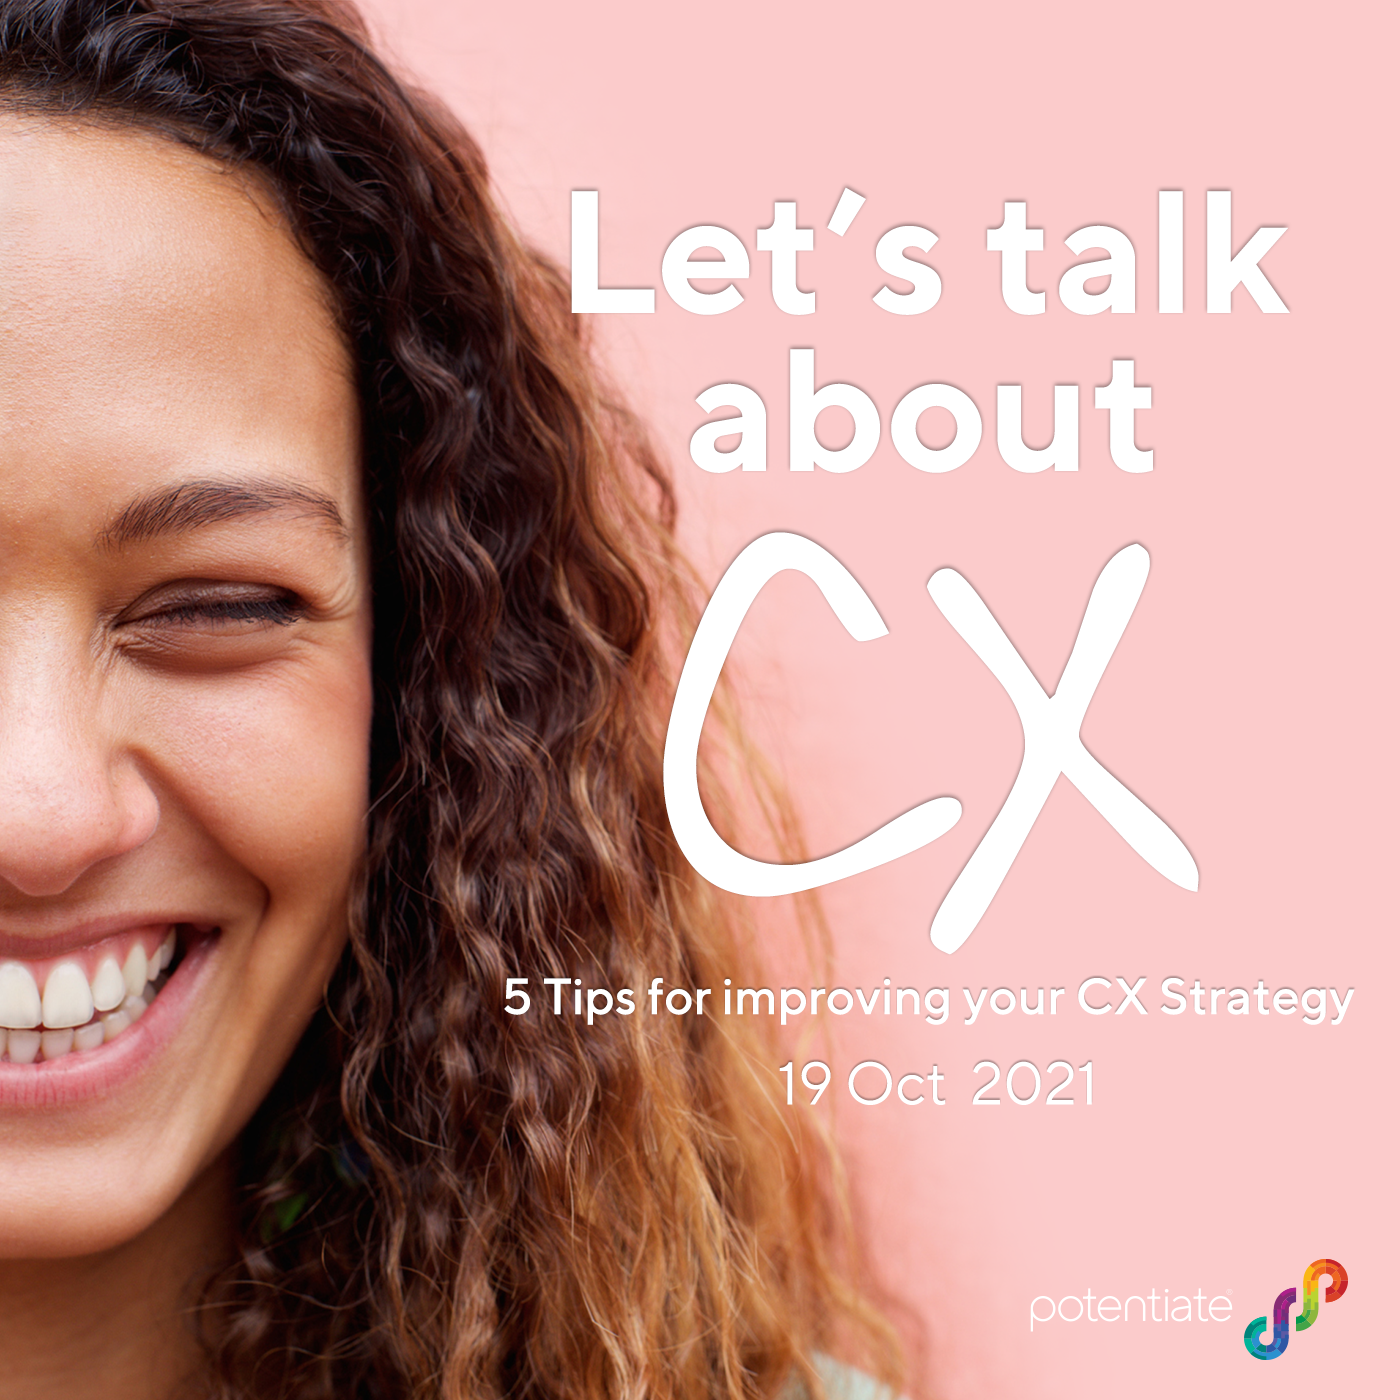 Let's Talk About CX | 5 Tips for Improving your CX Strategy